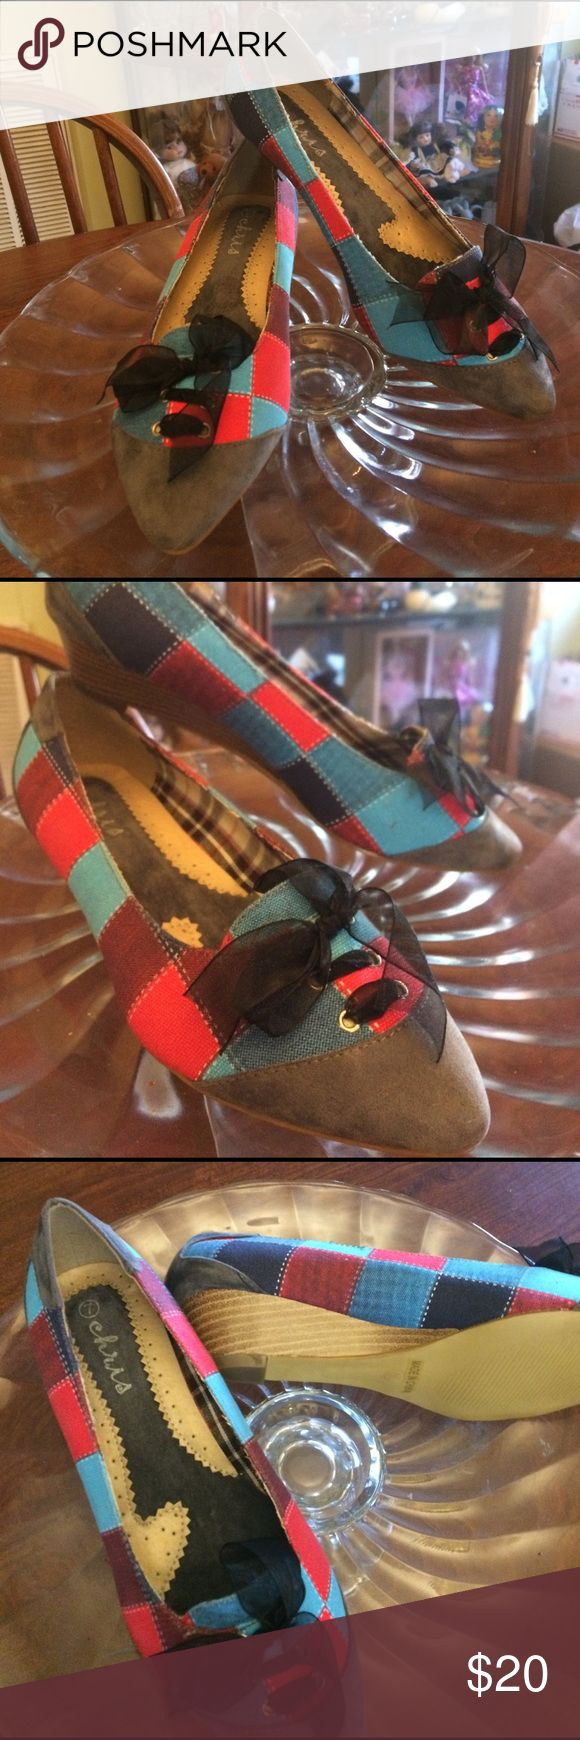 Pointed checked wedges. Super cute and fun pointed wedges in turquoise, red, navy with  black laced up bows at top. Look brand new and as far as I know have never been worn. These would look AMAZING with turquoise and red coral jewelry! chris Shoes Wedges